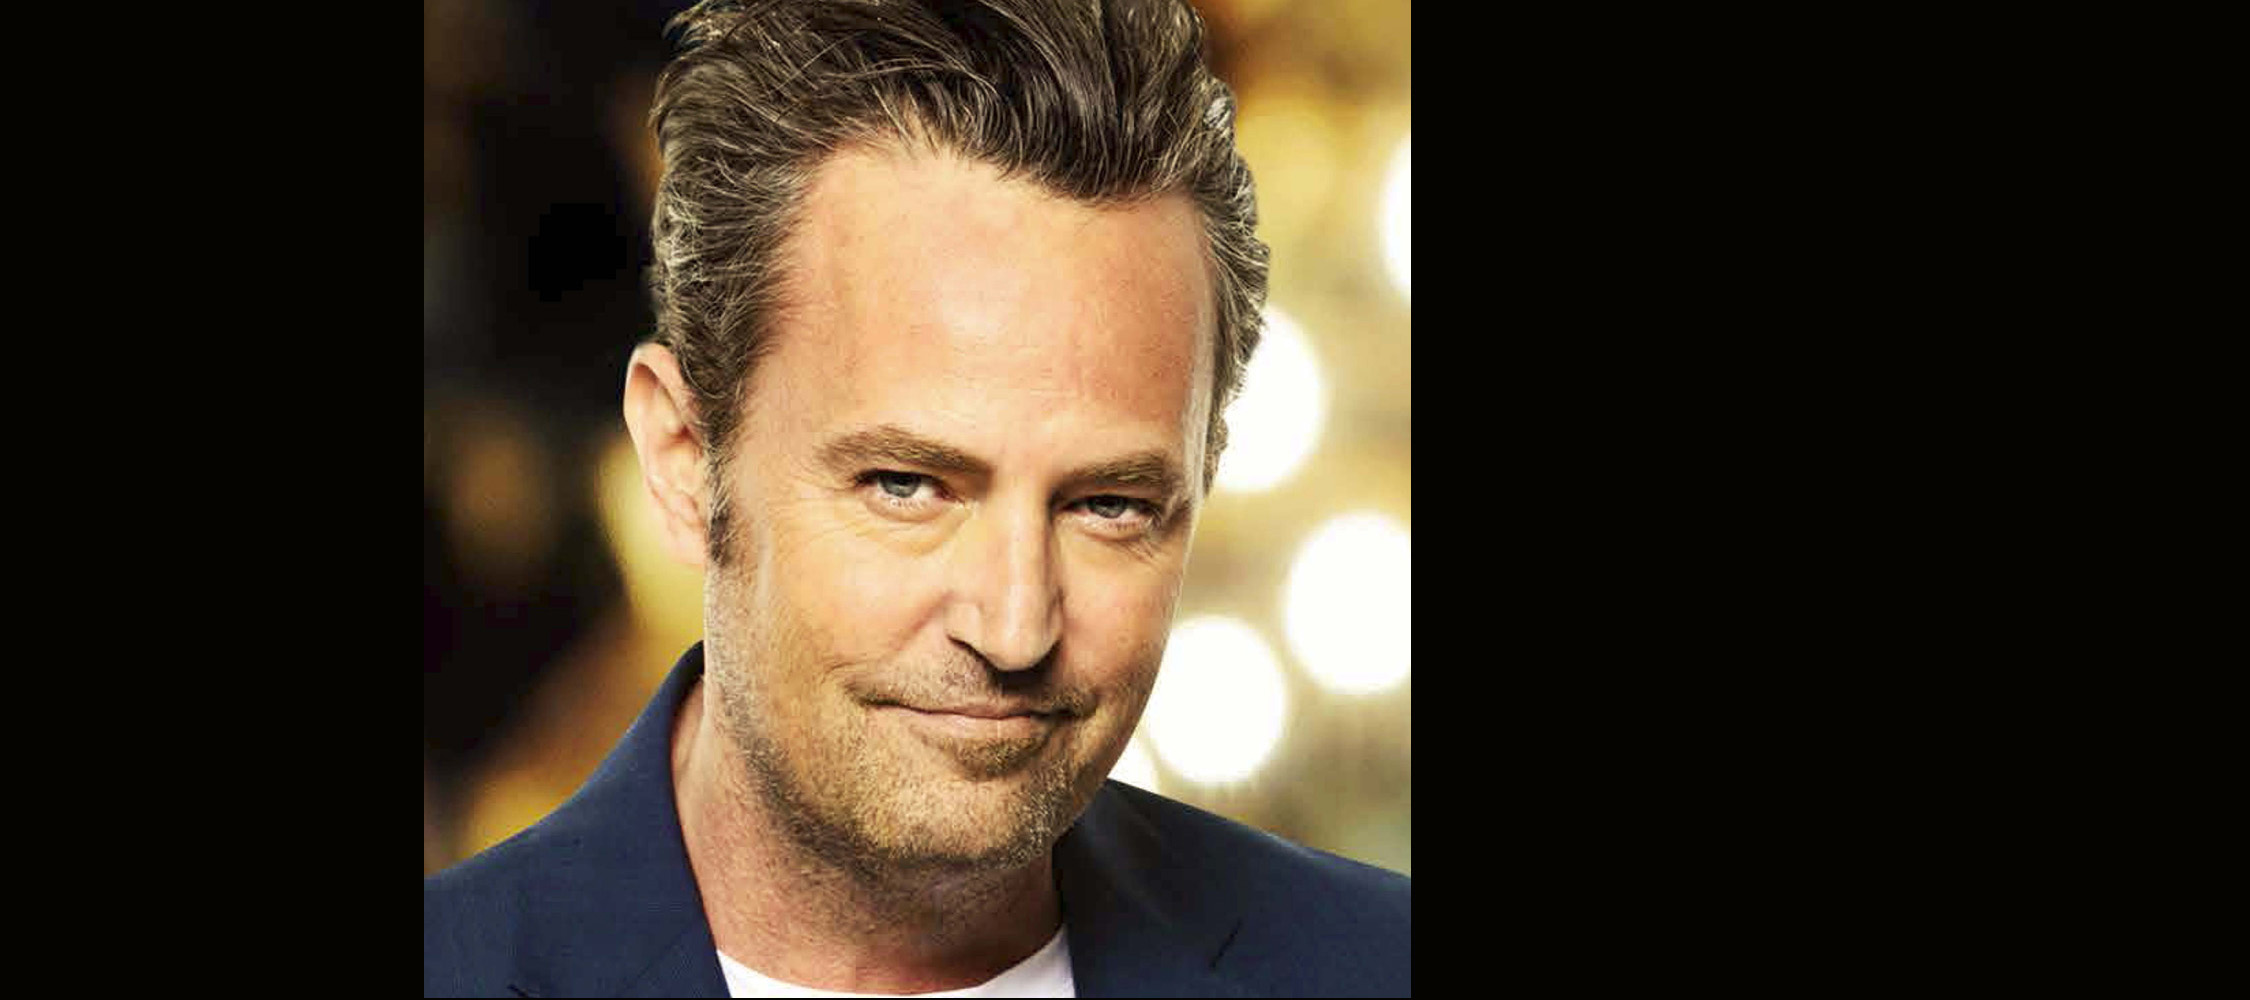 MATTHEW PERRY TO STAR AS TED KENNEDY IN MUSE ENTERTAINMENT MINISERIES